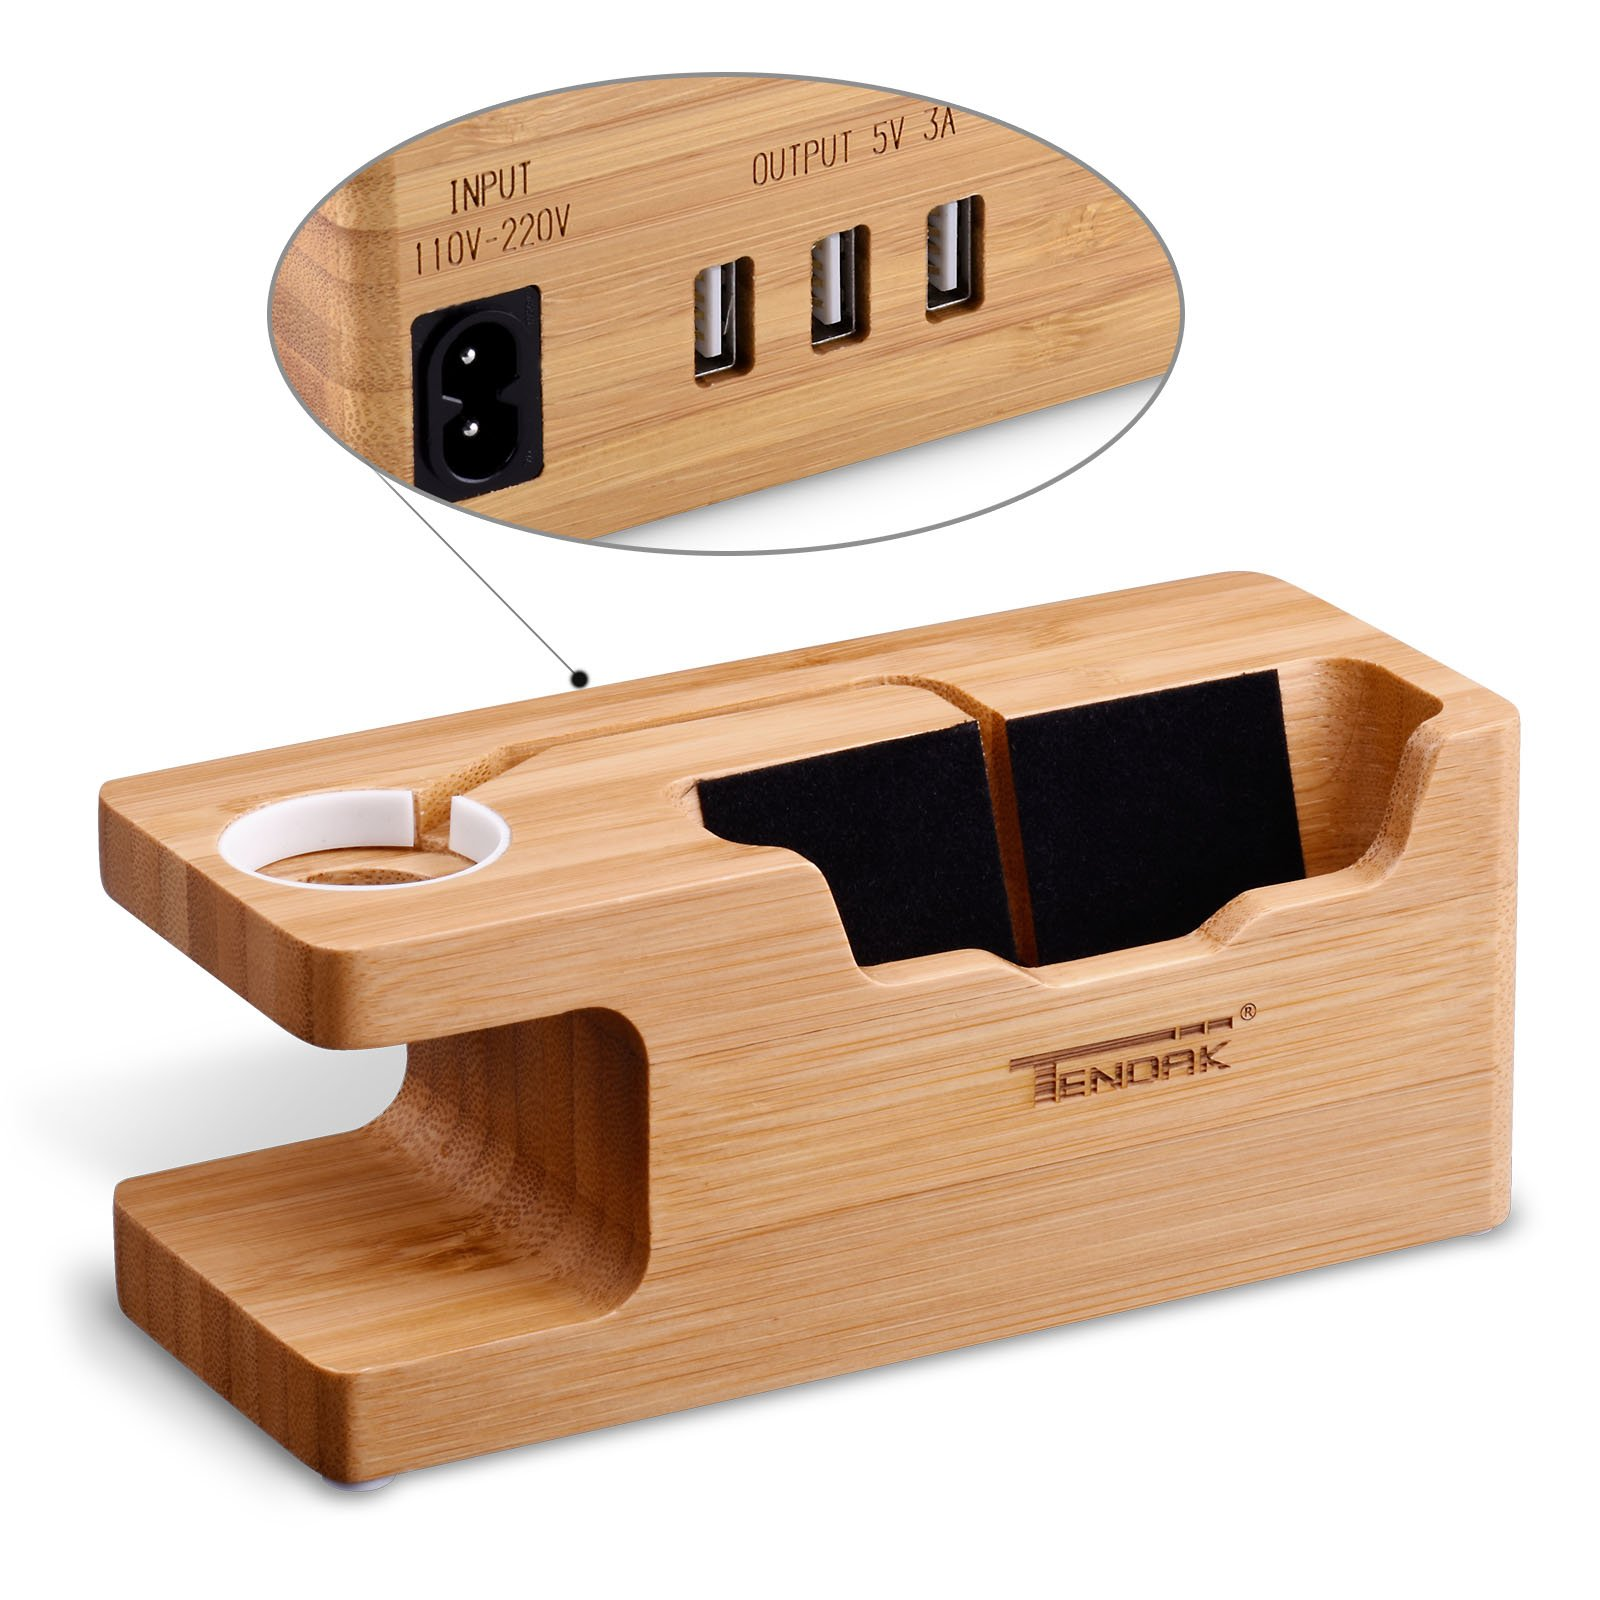 Apple Watch Charging Stand - Tendak Apple Watch Phone Standwith 3 USB Port Bamboo Wood USB Charging Station for 38mm and 42mm Apple Watch & iPhone 6 6 plus 5S 5 7 7 plus and Other Smartphone